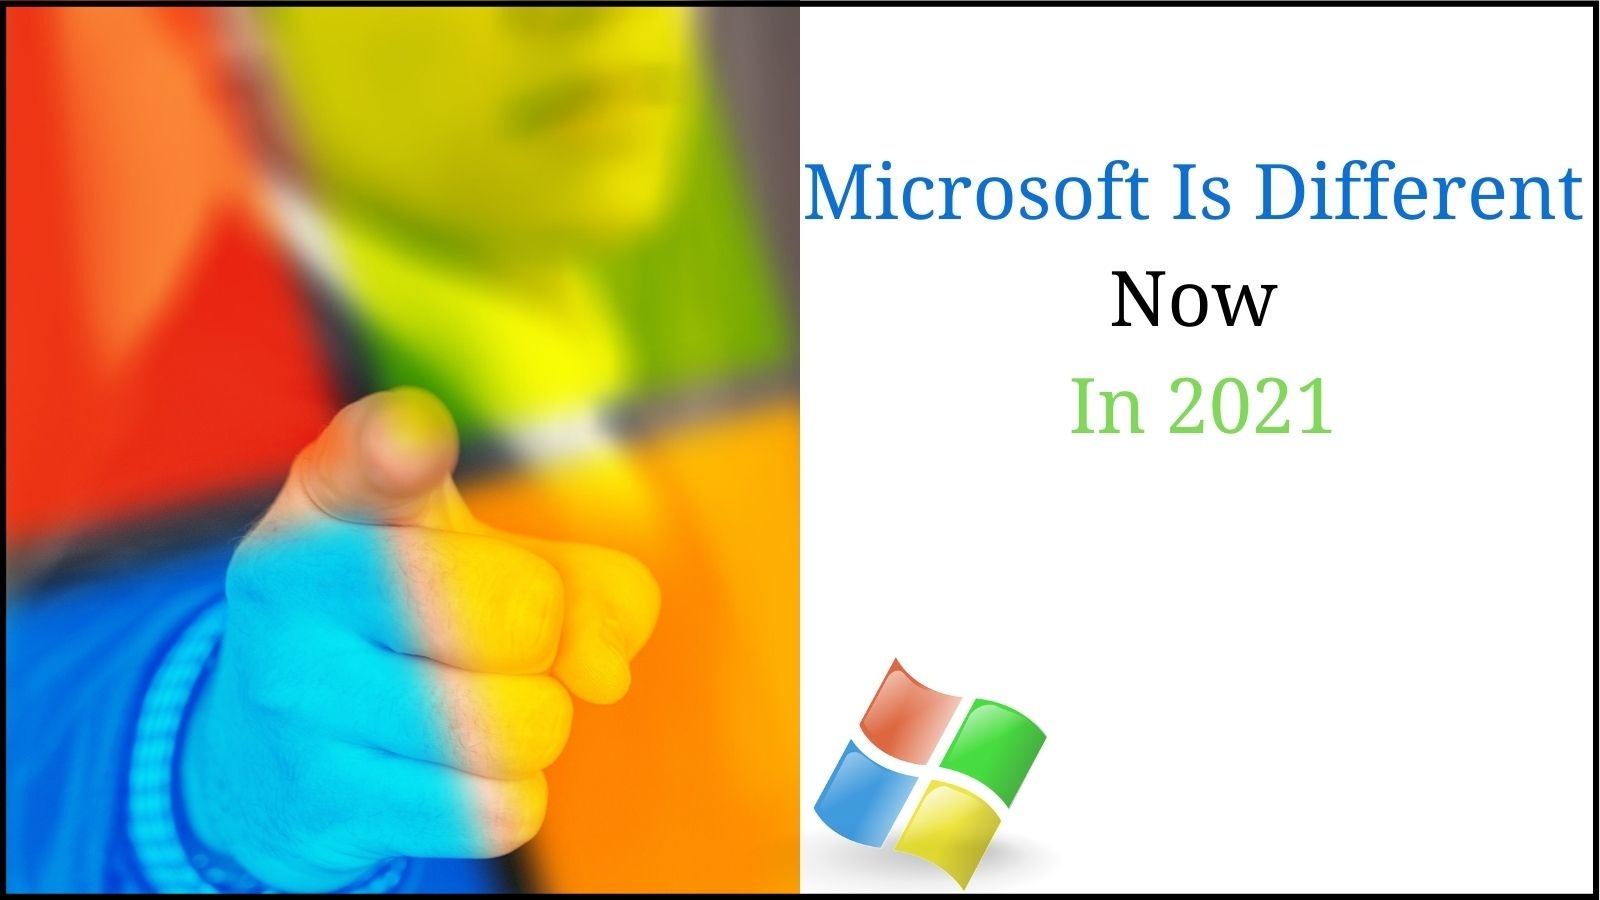 Microsoft is different now